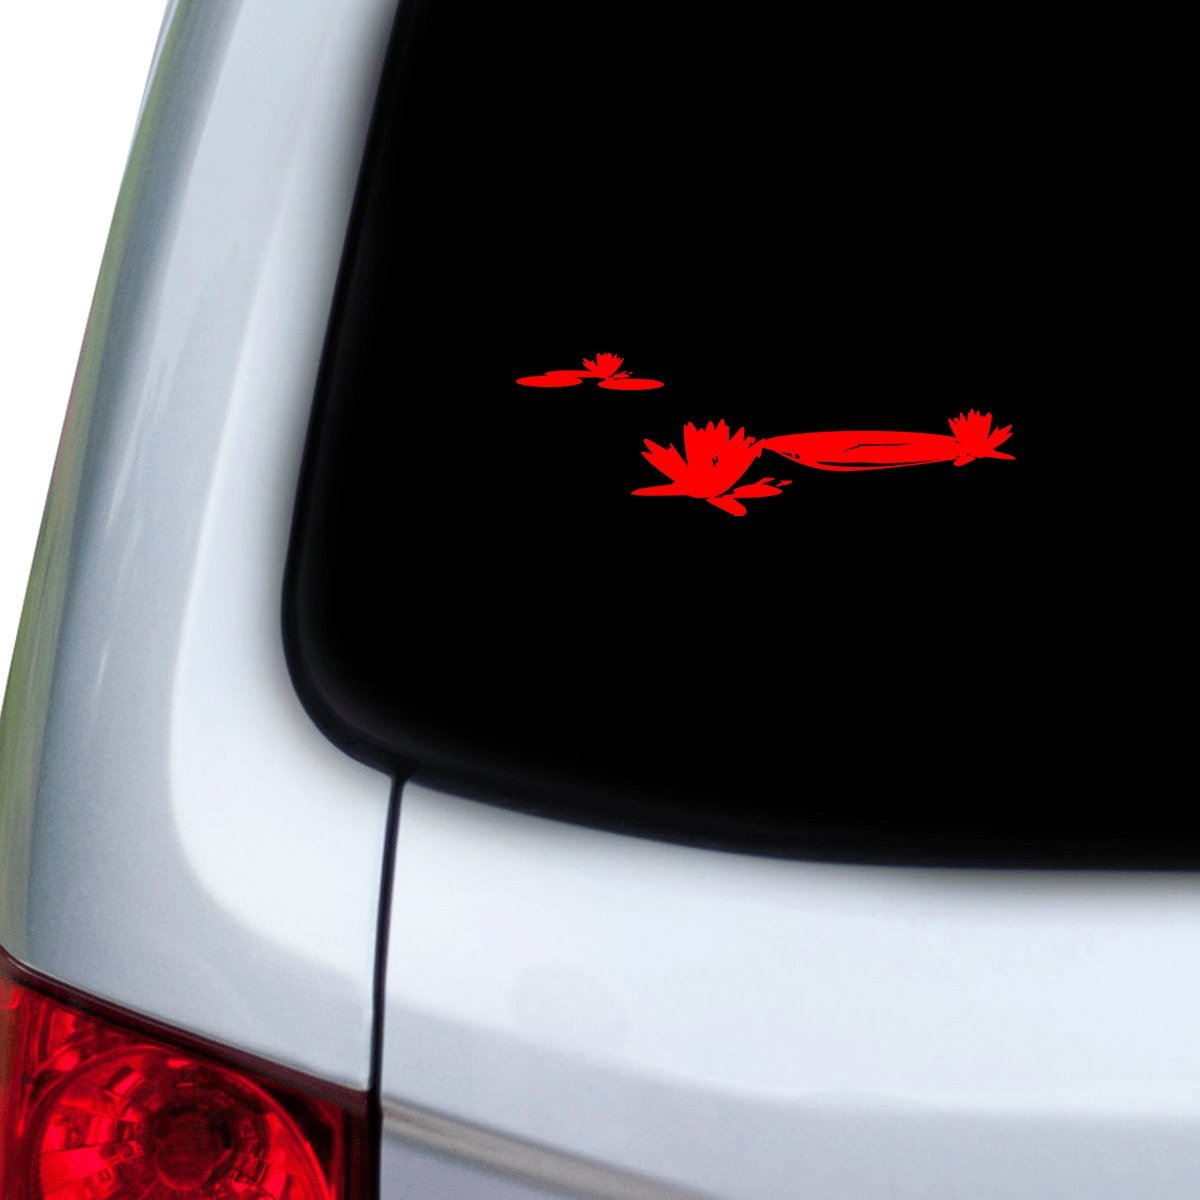 Doors Hoods StickAny Car and Auto Decal Series Lilly Pads Sticker for Windows Red